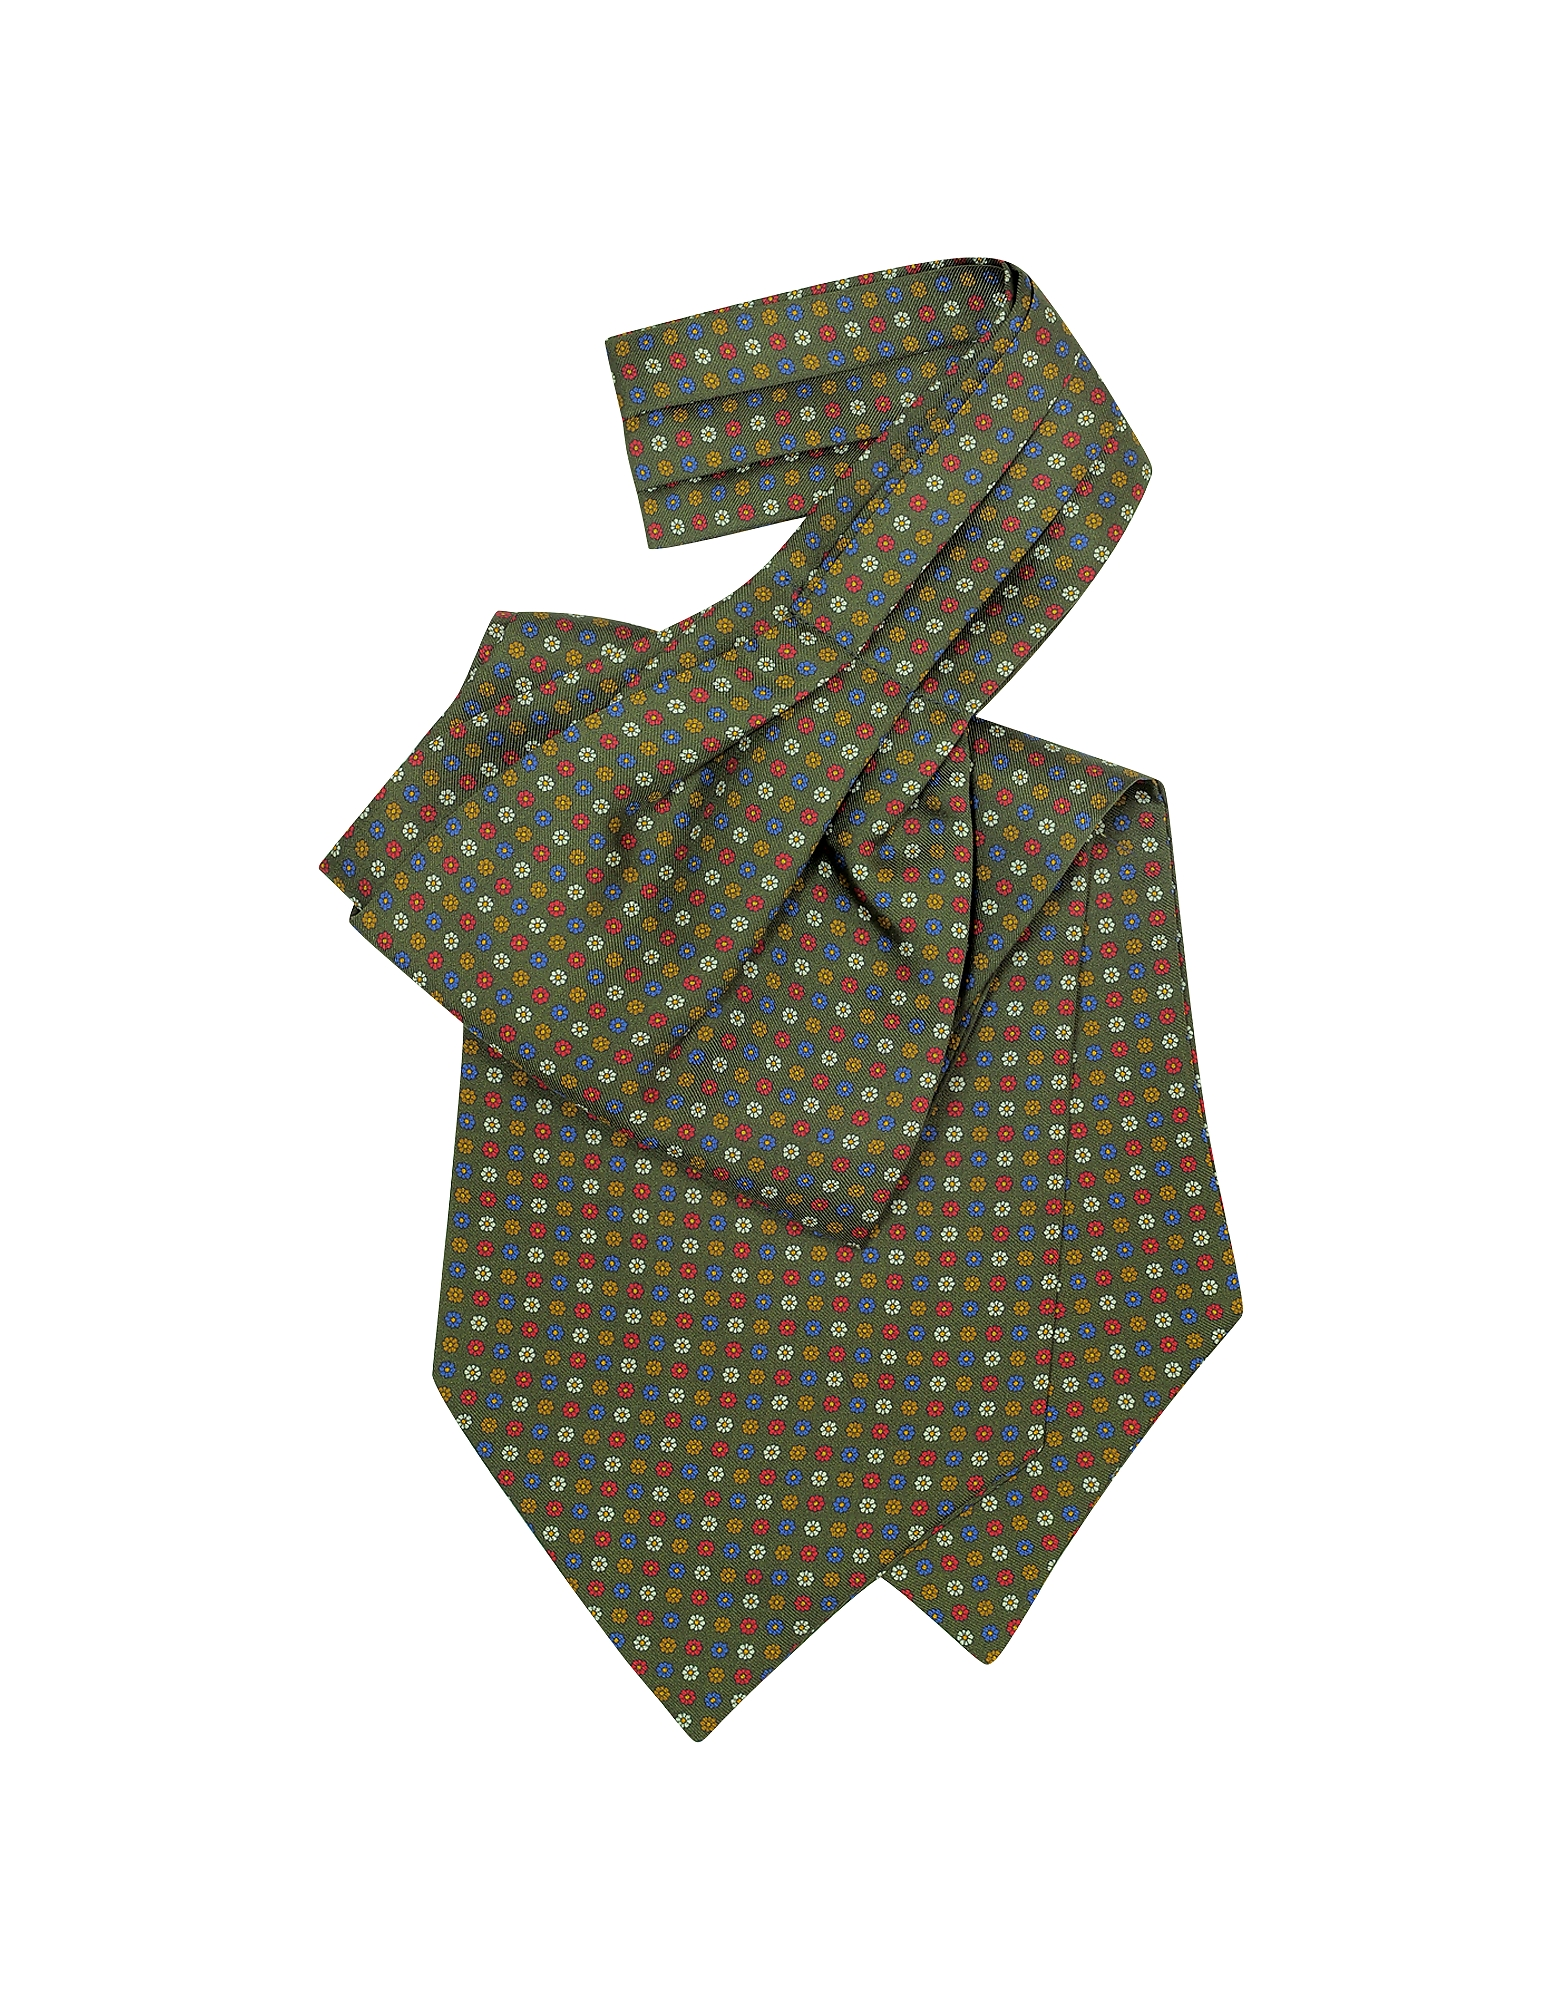 Forzieri Ascot ties, Multicolor Floral Print Silk Ascot